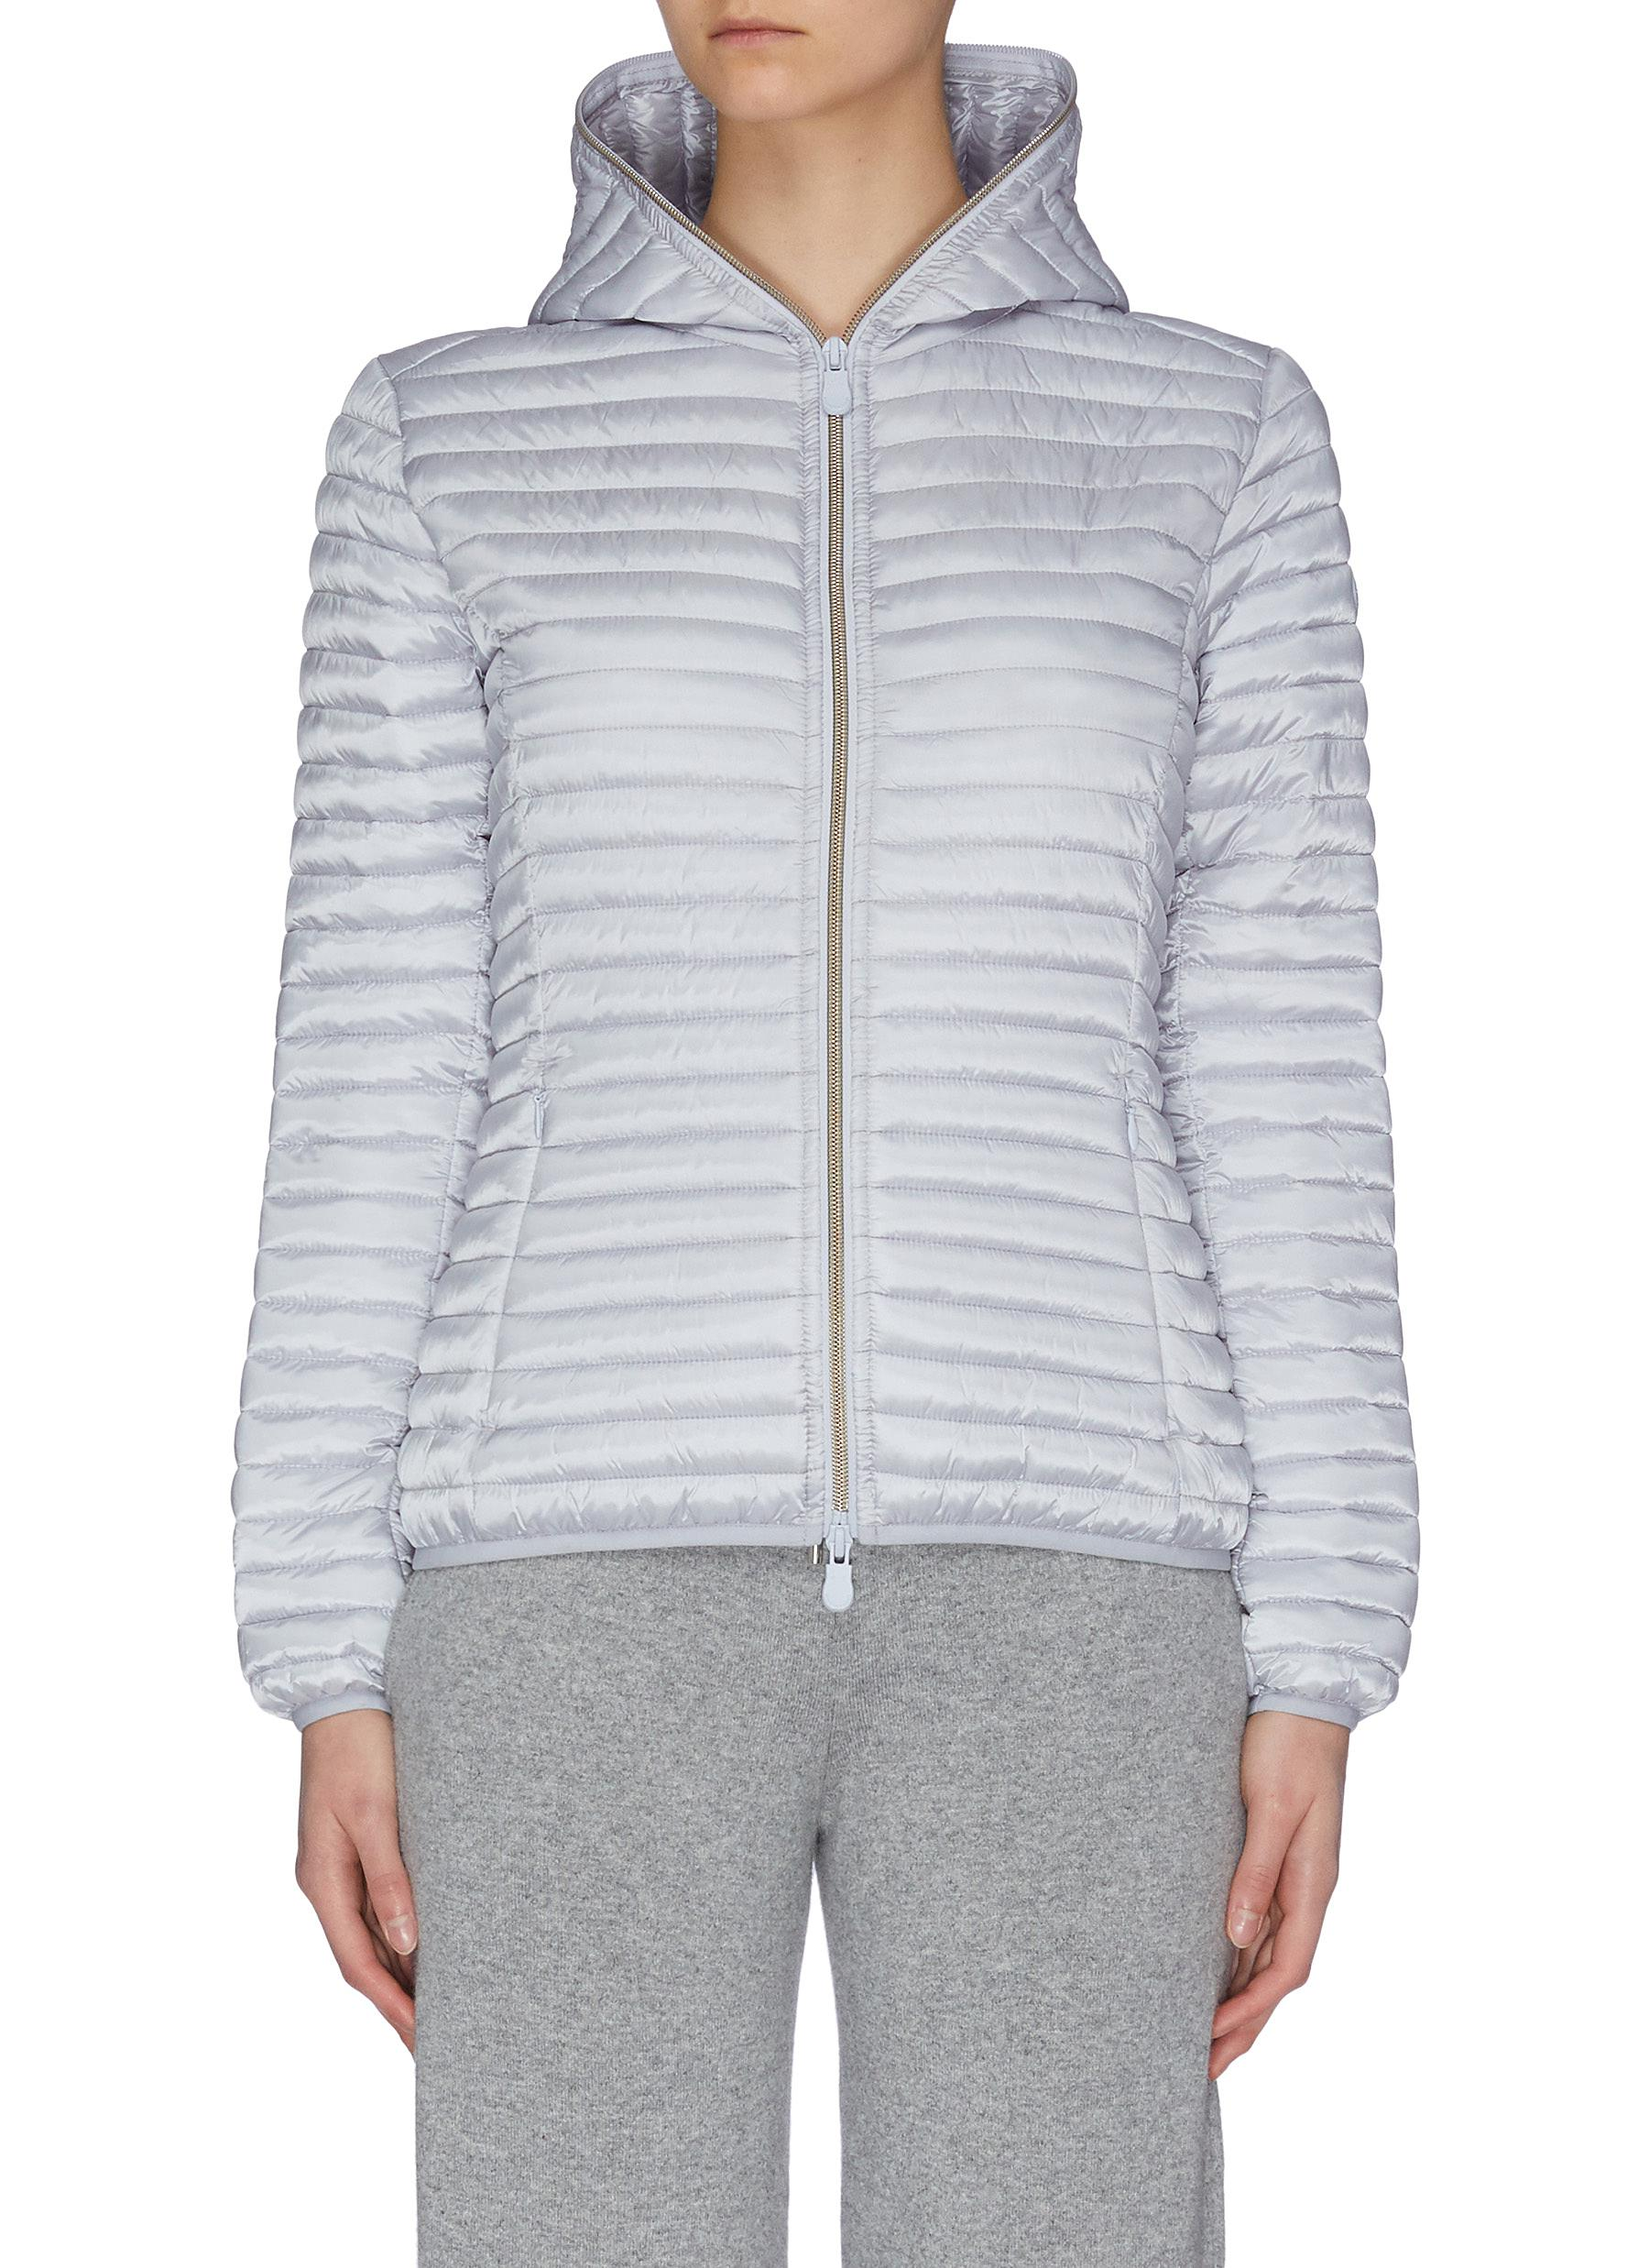 Buy Save The Duck Jackets 'Irisx' hooded down jacket